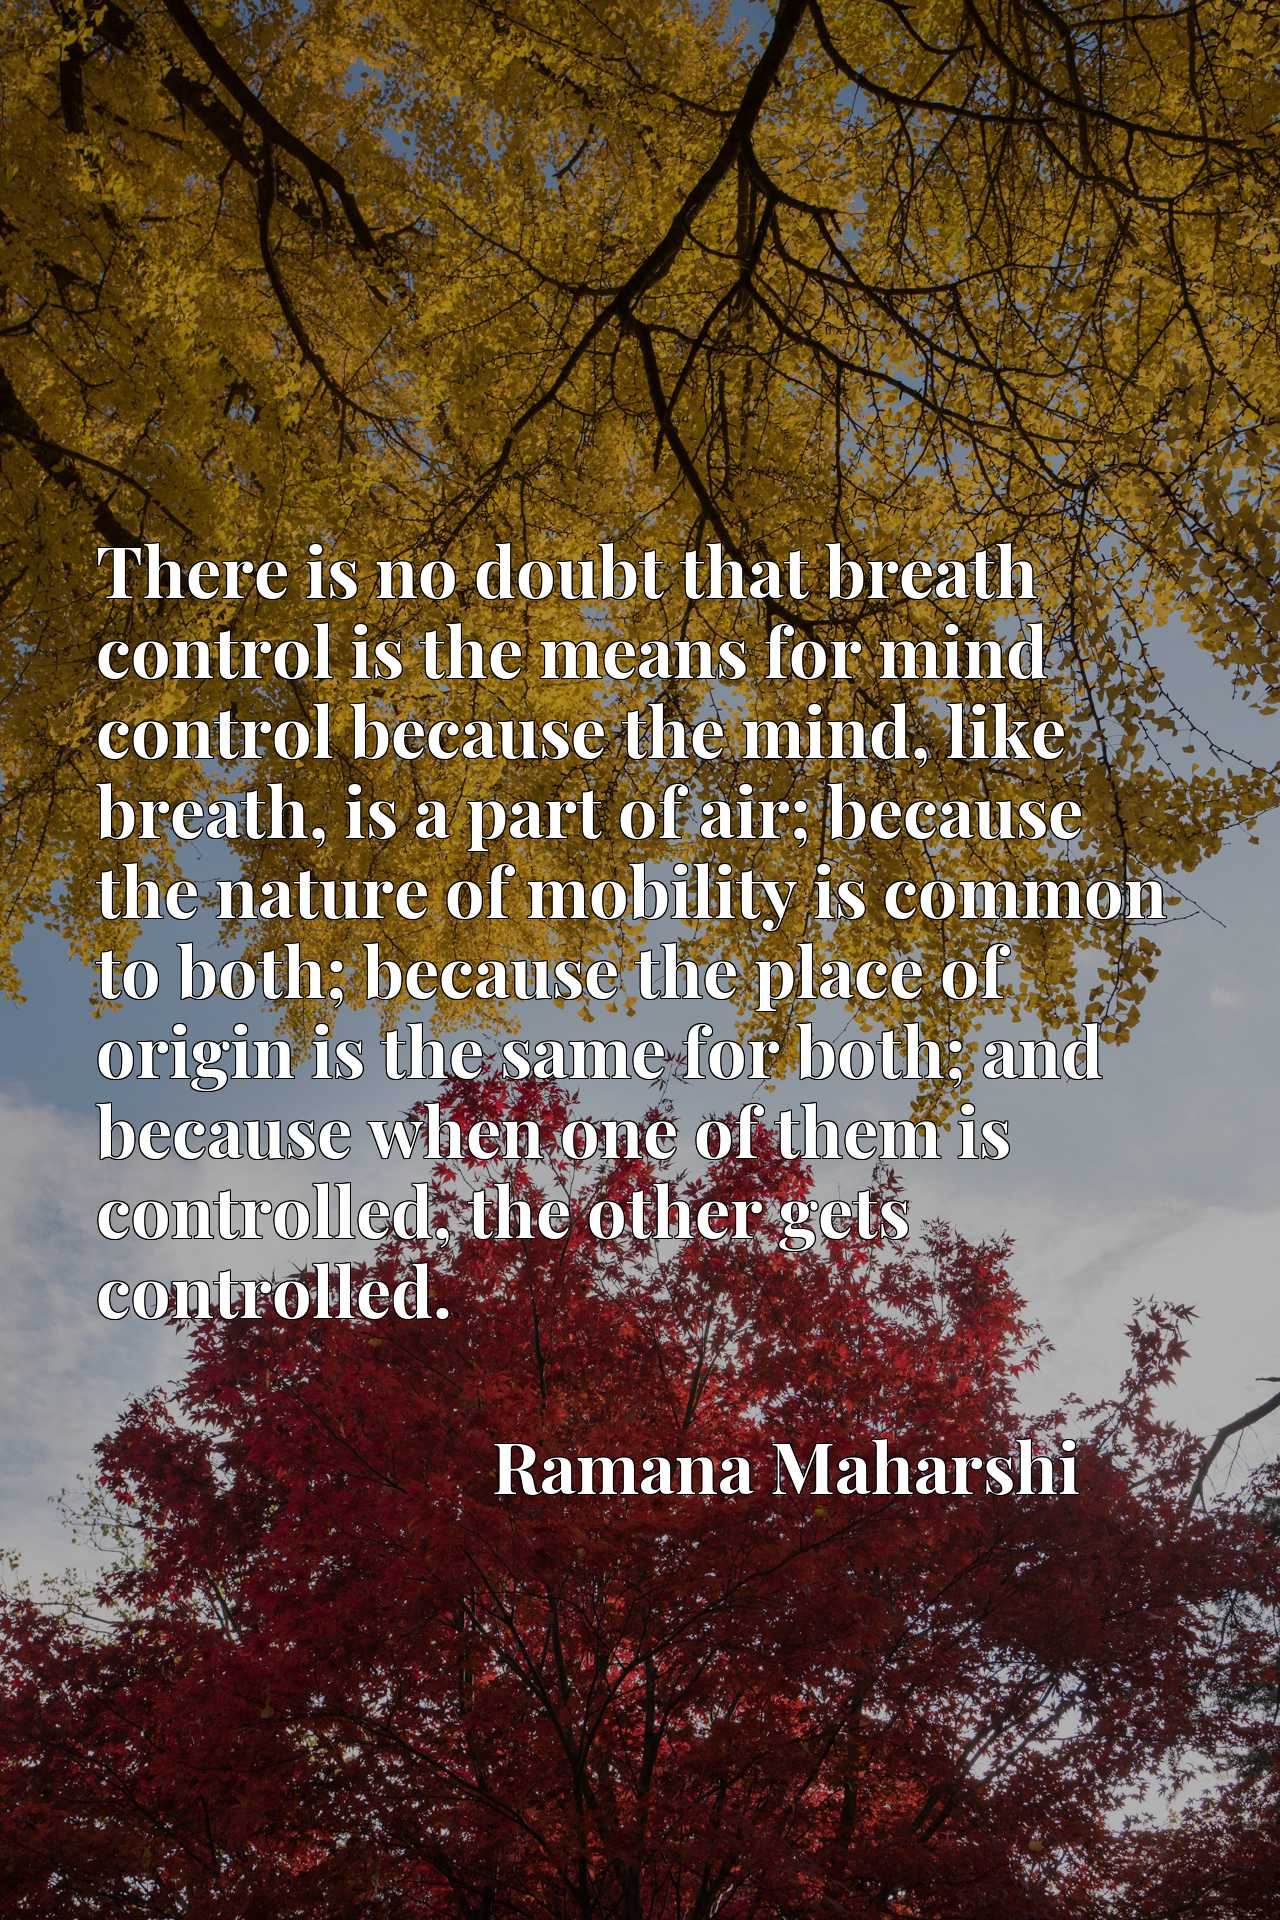 There is no doubt that breath control is the means for mind control because the mind, like breath, is a part of air; because the nature of mobility is common to both; because the place of origin is the same for both; and because when one of them is controlled, the other gets controlled.